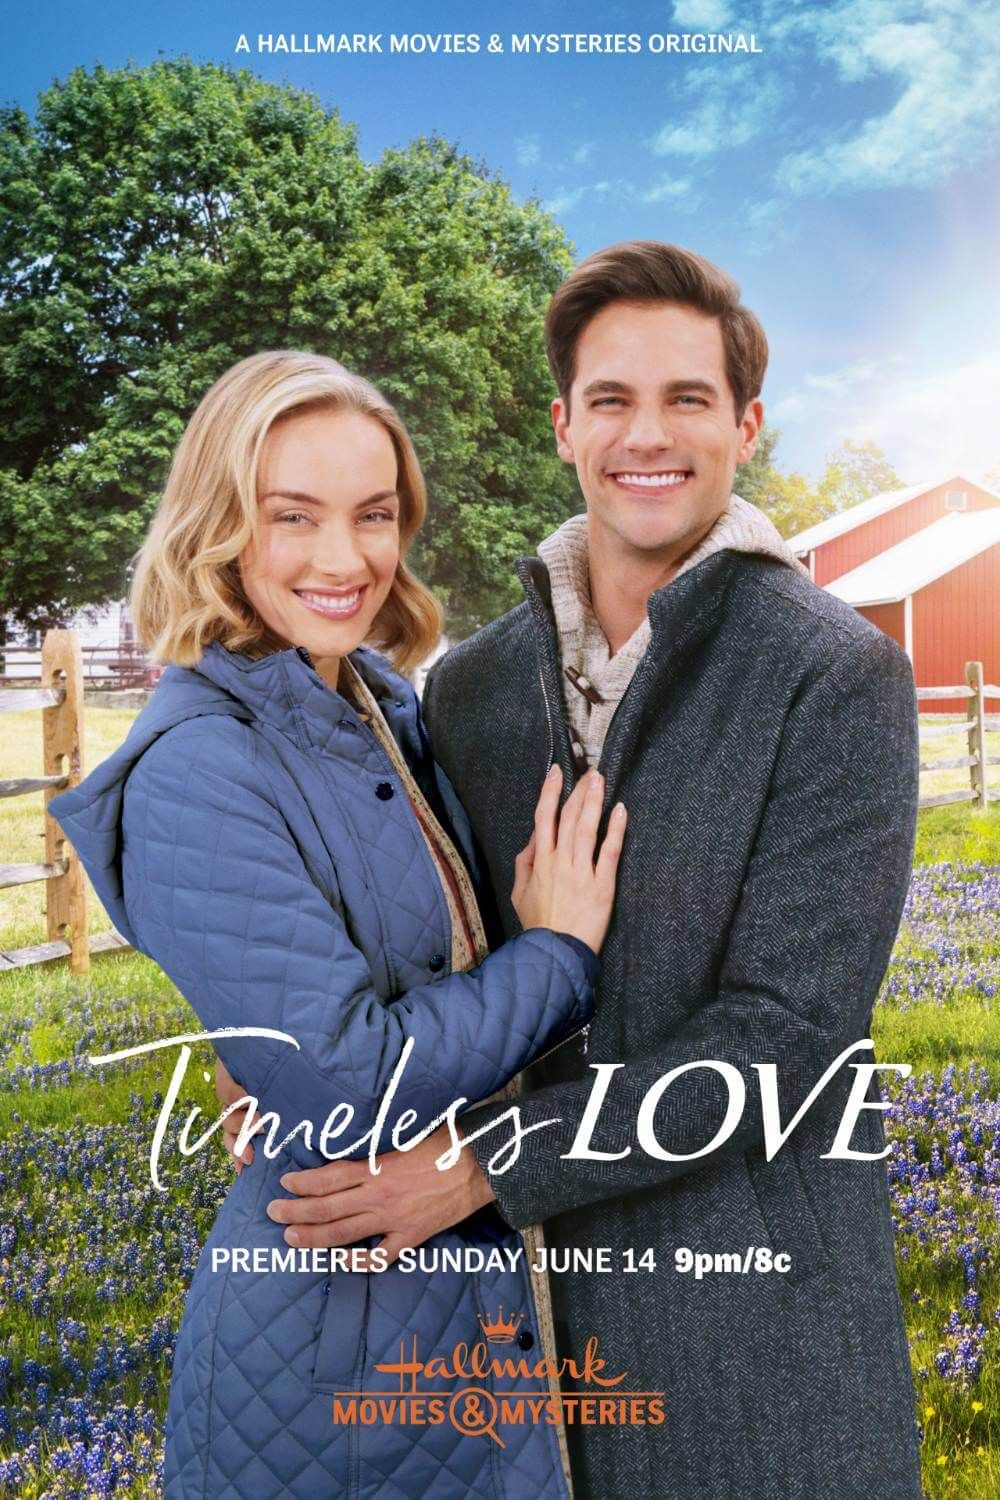 Timeless Love; Five new Hallmark movies premiere in June! Here is a list of the new premieres on the Hallmark Channel and Hallmark Movies & Mysteries. #HallmarkMovies #HallmarkMoviesRomance #HallmarkChannel #entertainmentlist #romanticcomedymovies